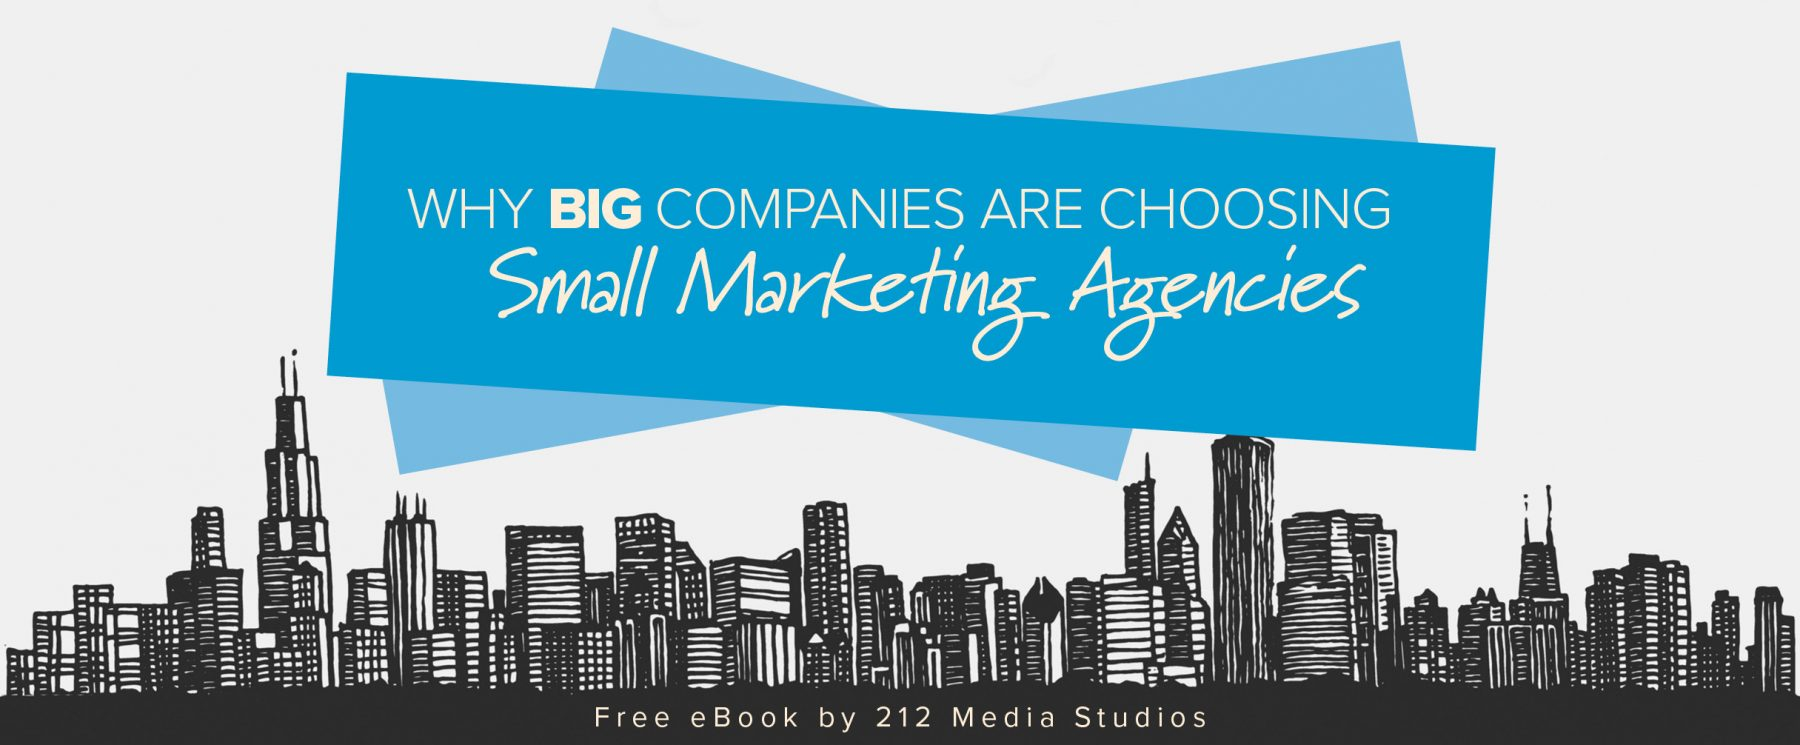 Why choose a Small Marketing Agency eBook